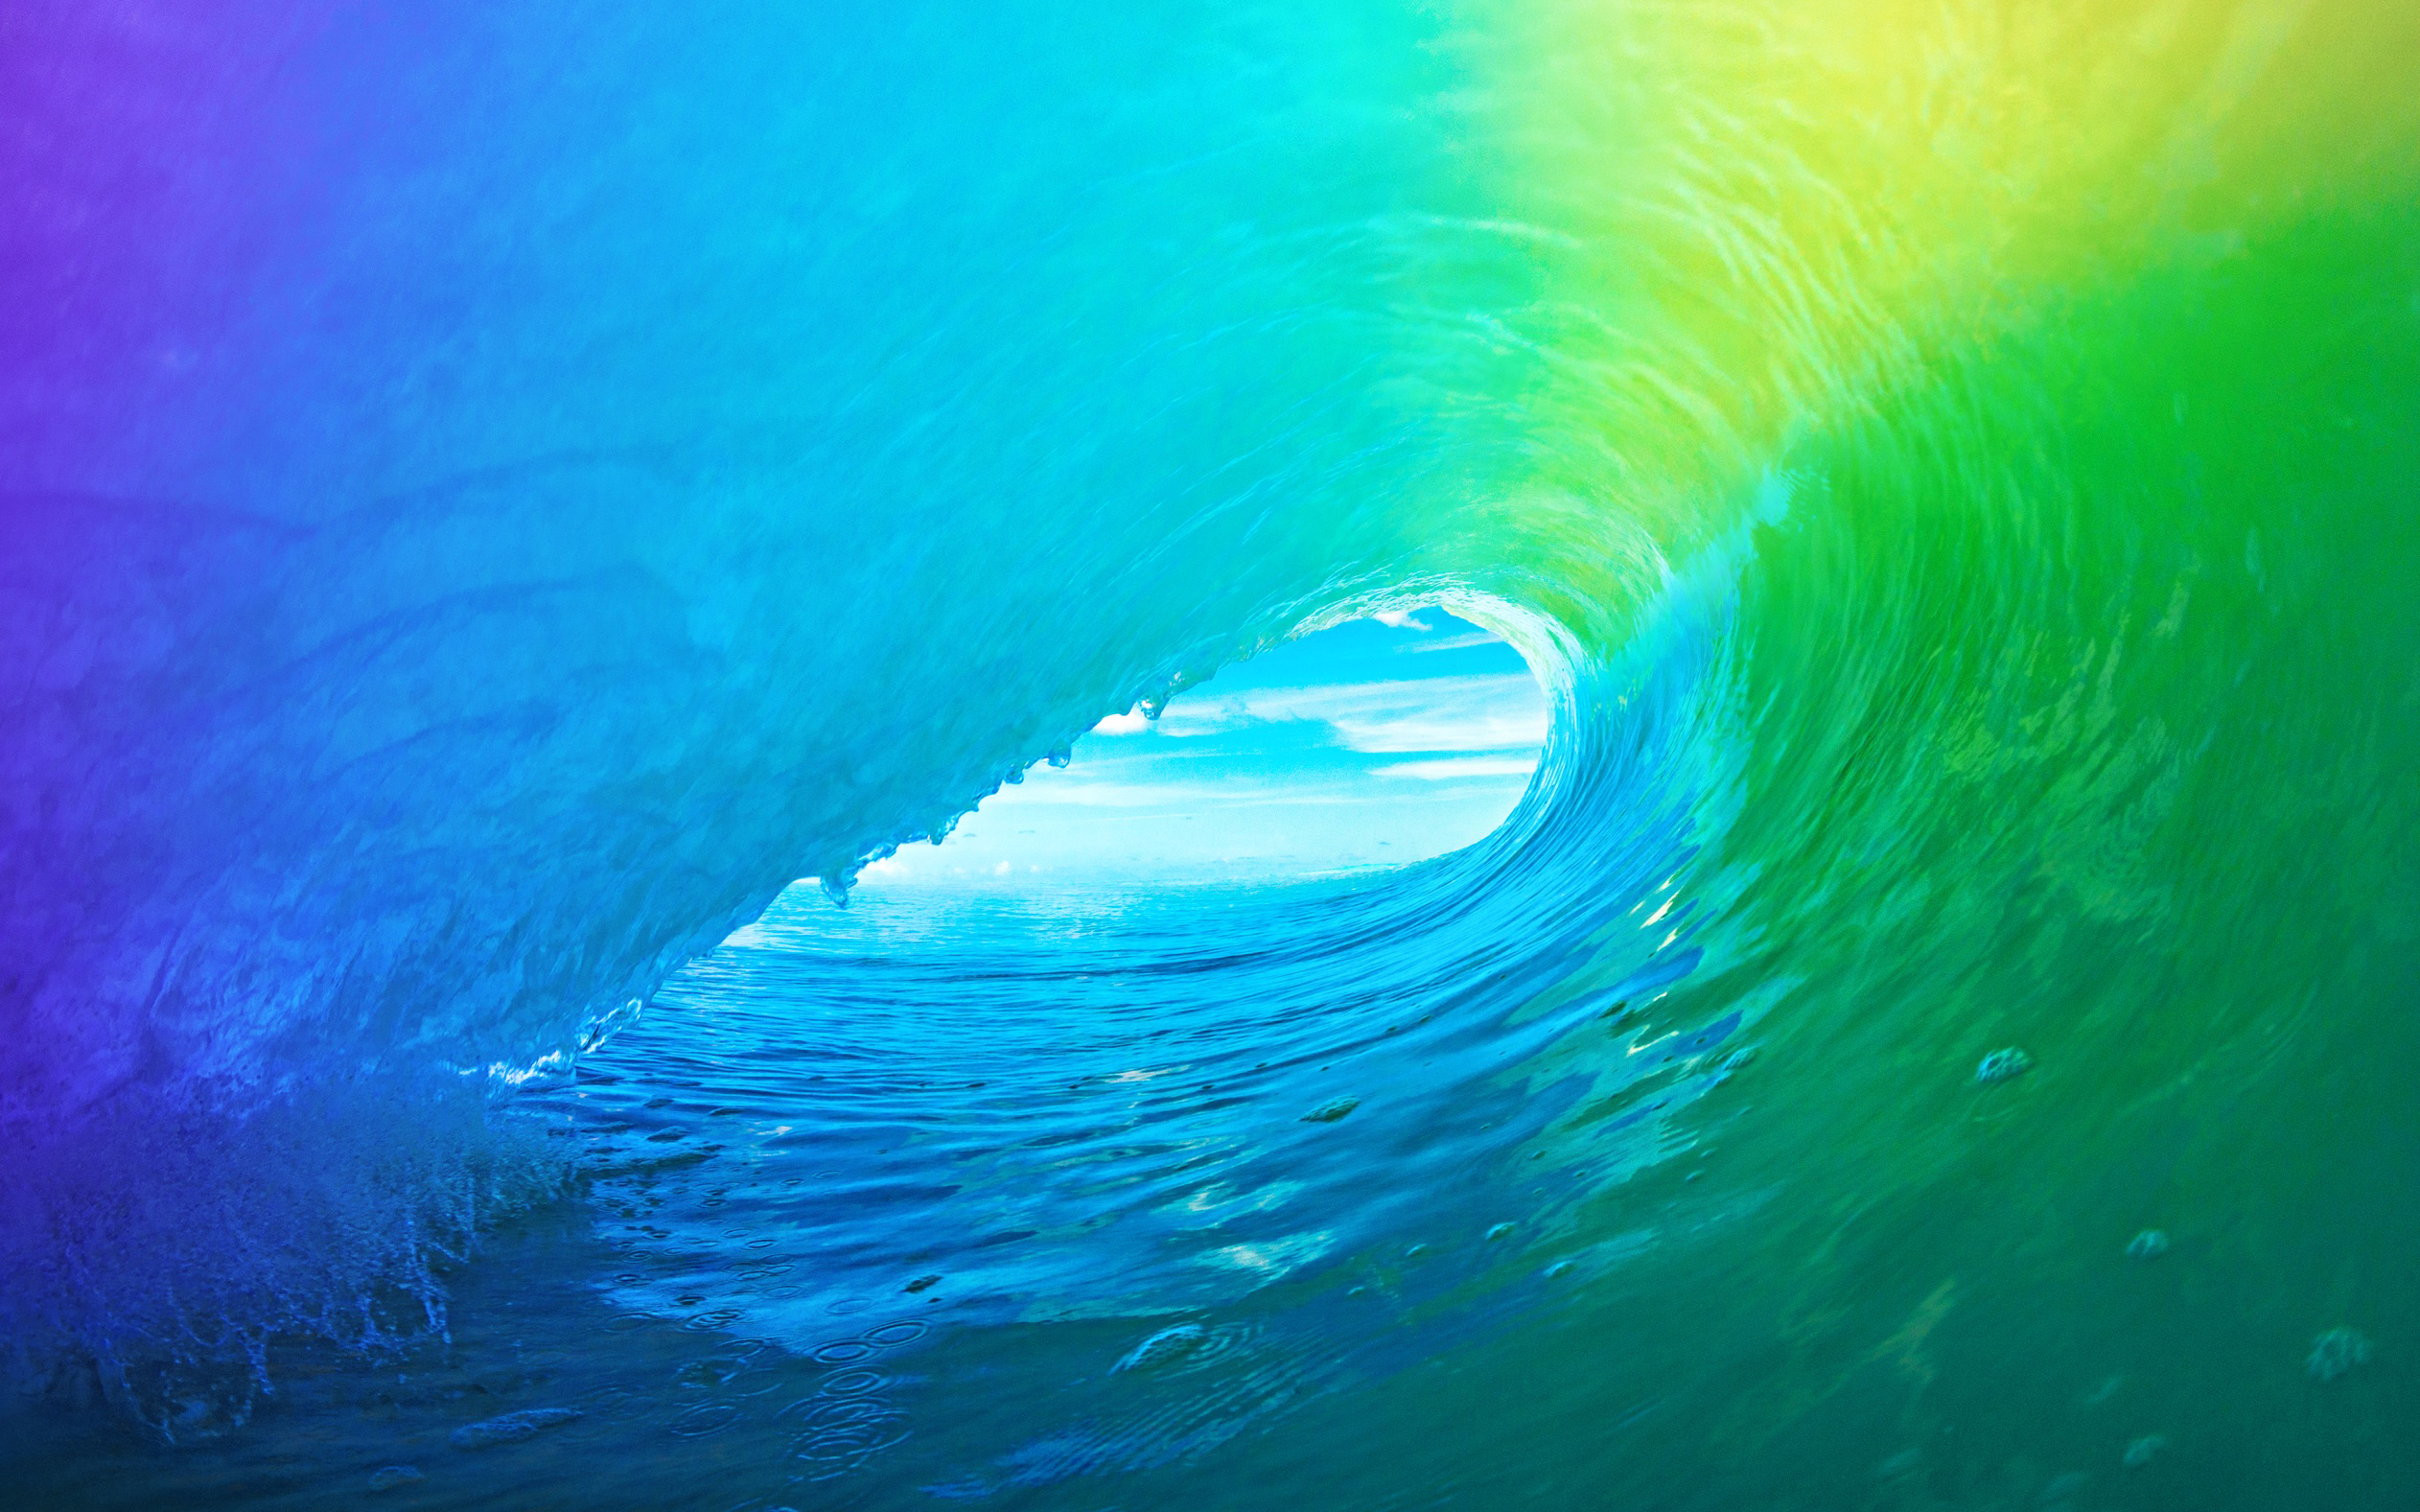 Download Ios 9 Live Wallpapers Iphone 6s 6s Plus: Download The Colored Wave Default IOS 9 Wallpaper